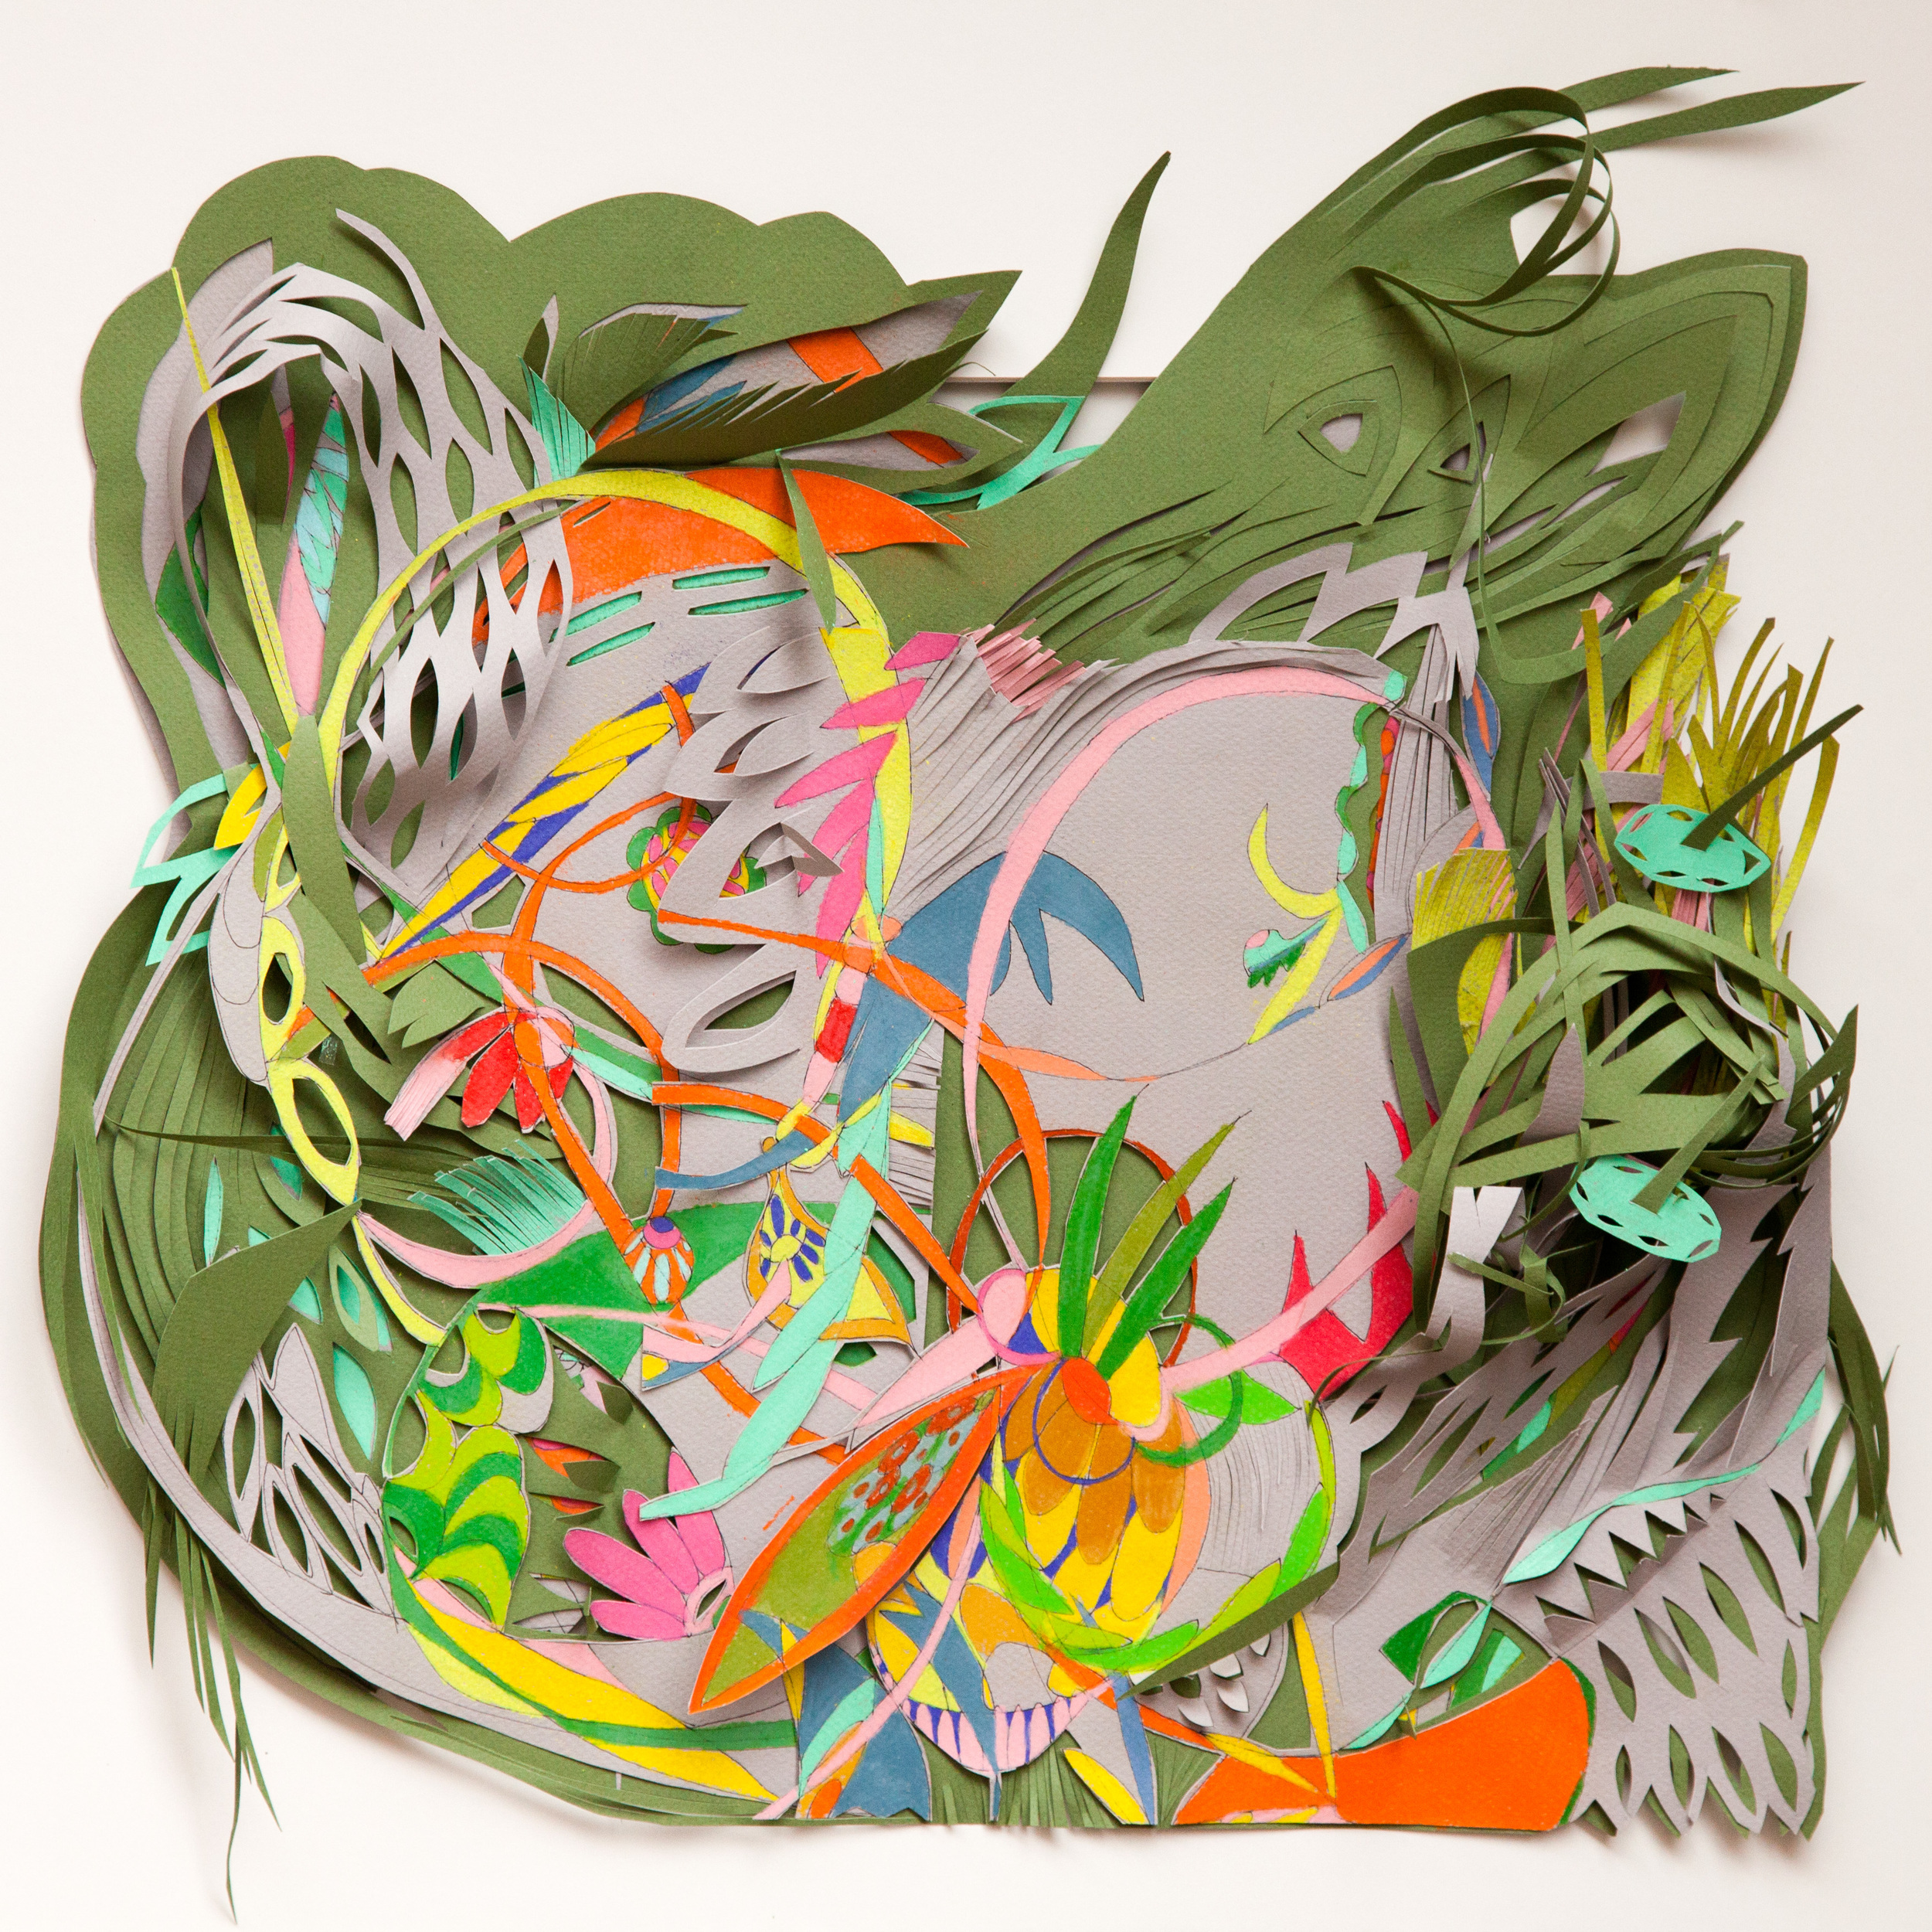 "Alive   Colored pencil, cut-out  14"" x 16""  2012"